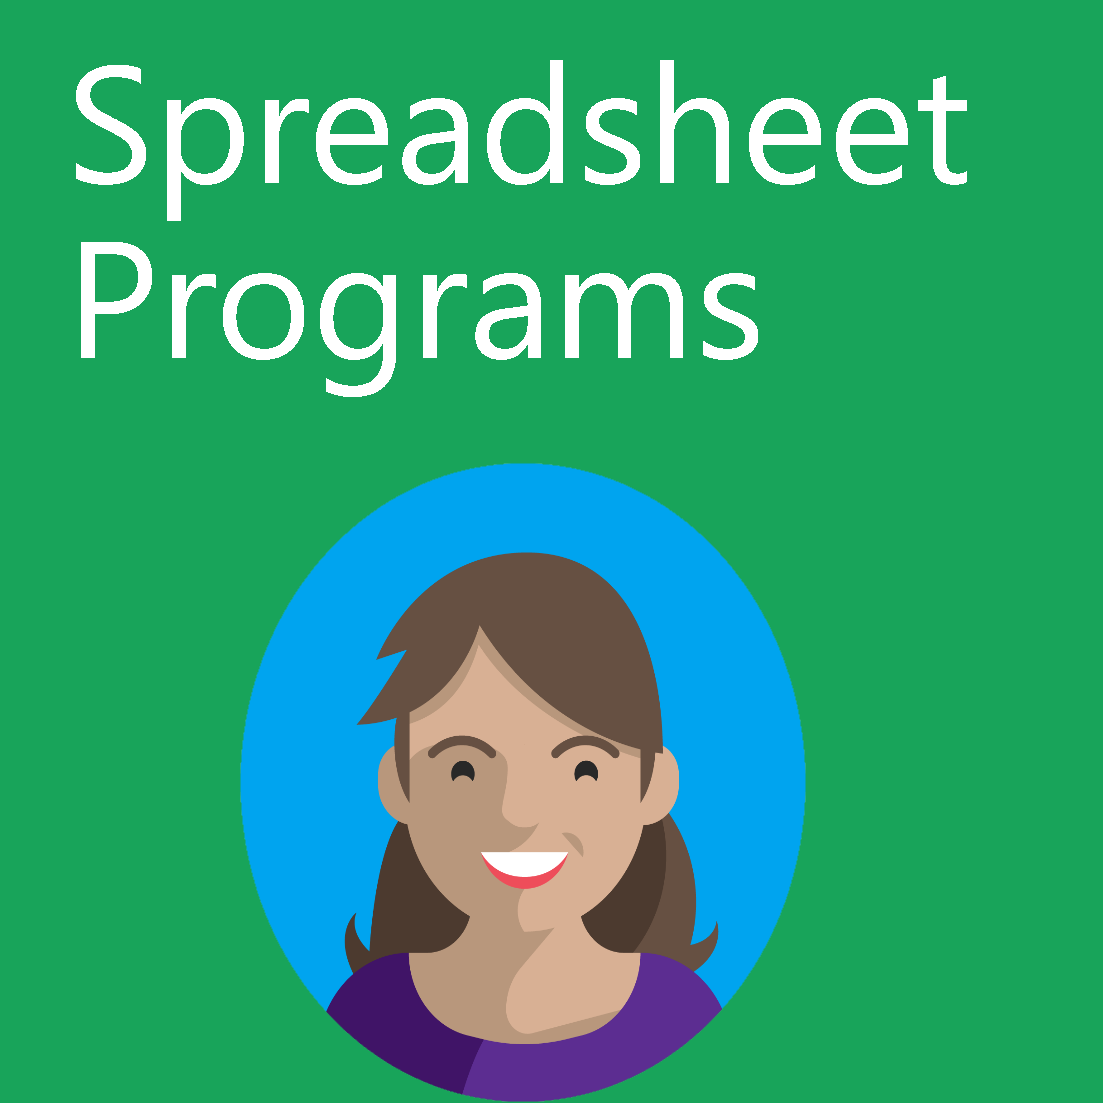 Module 4: Introduction to Spreadsheet Programs